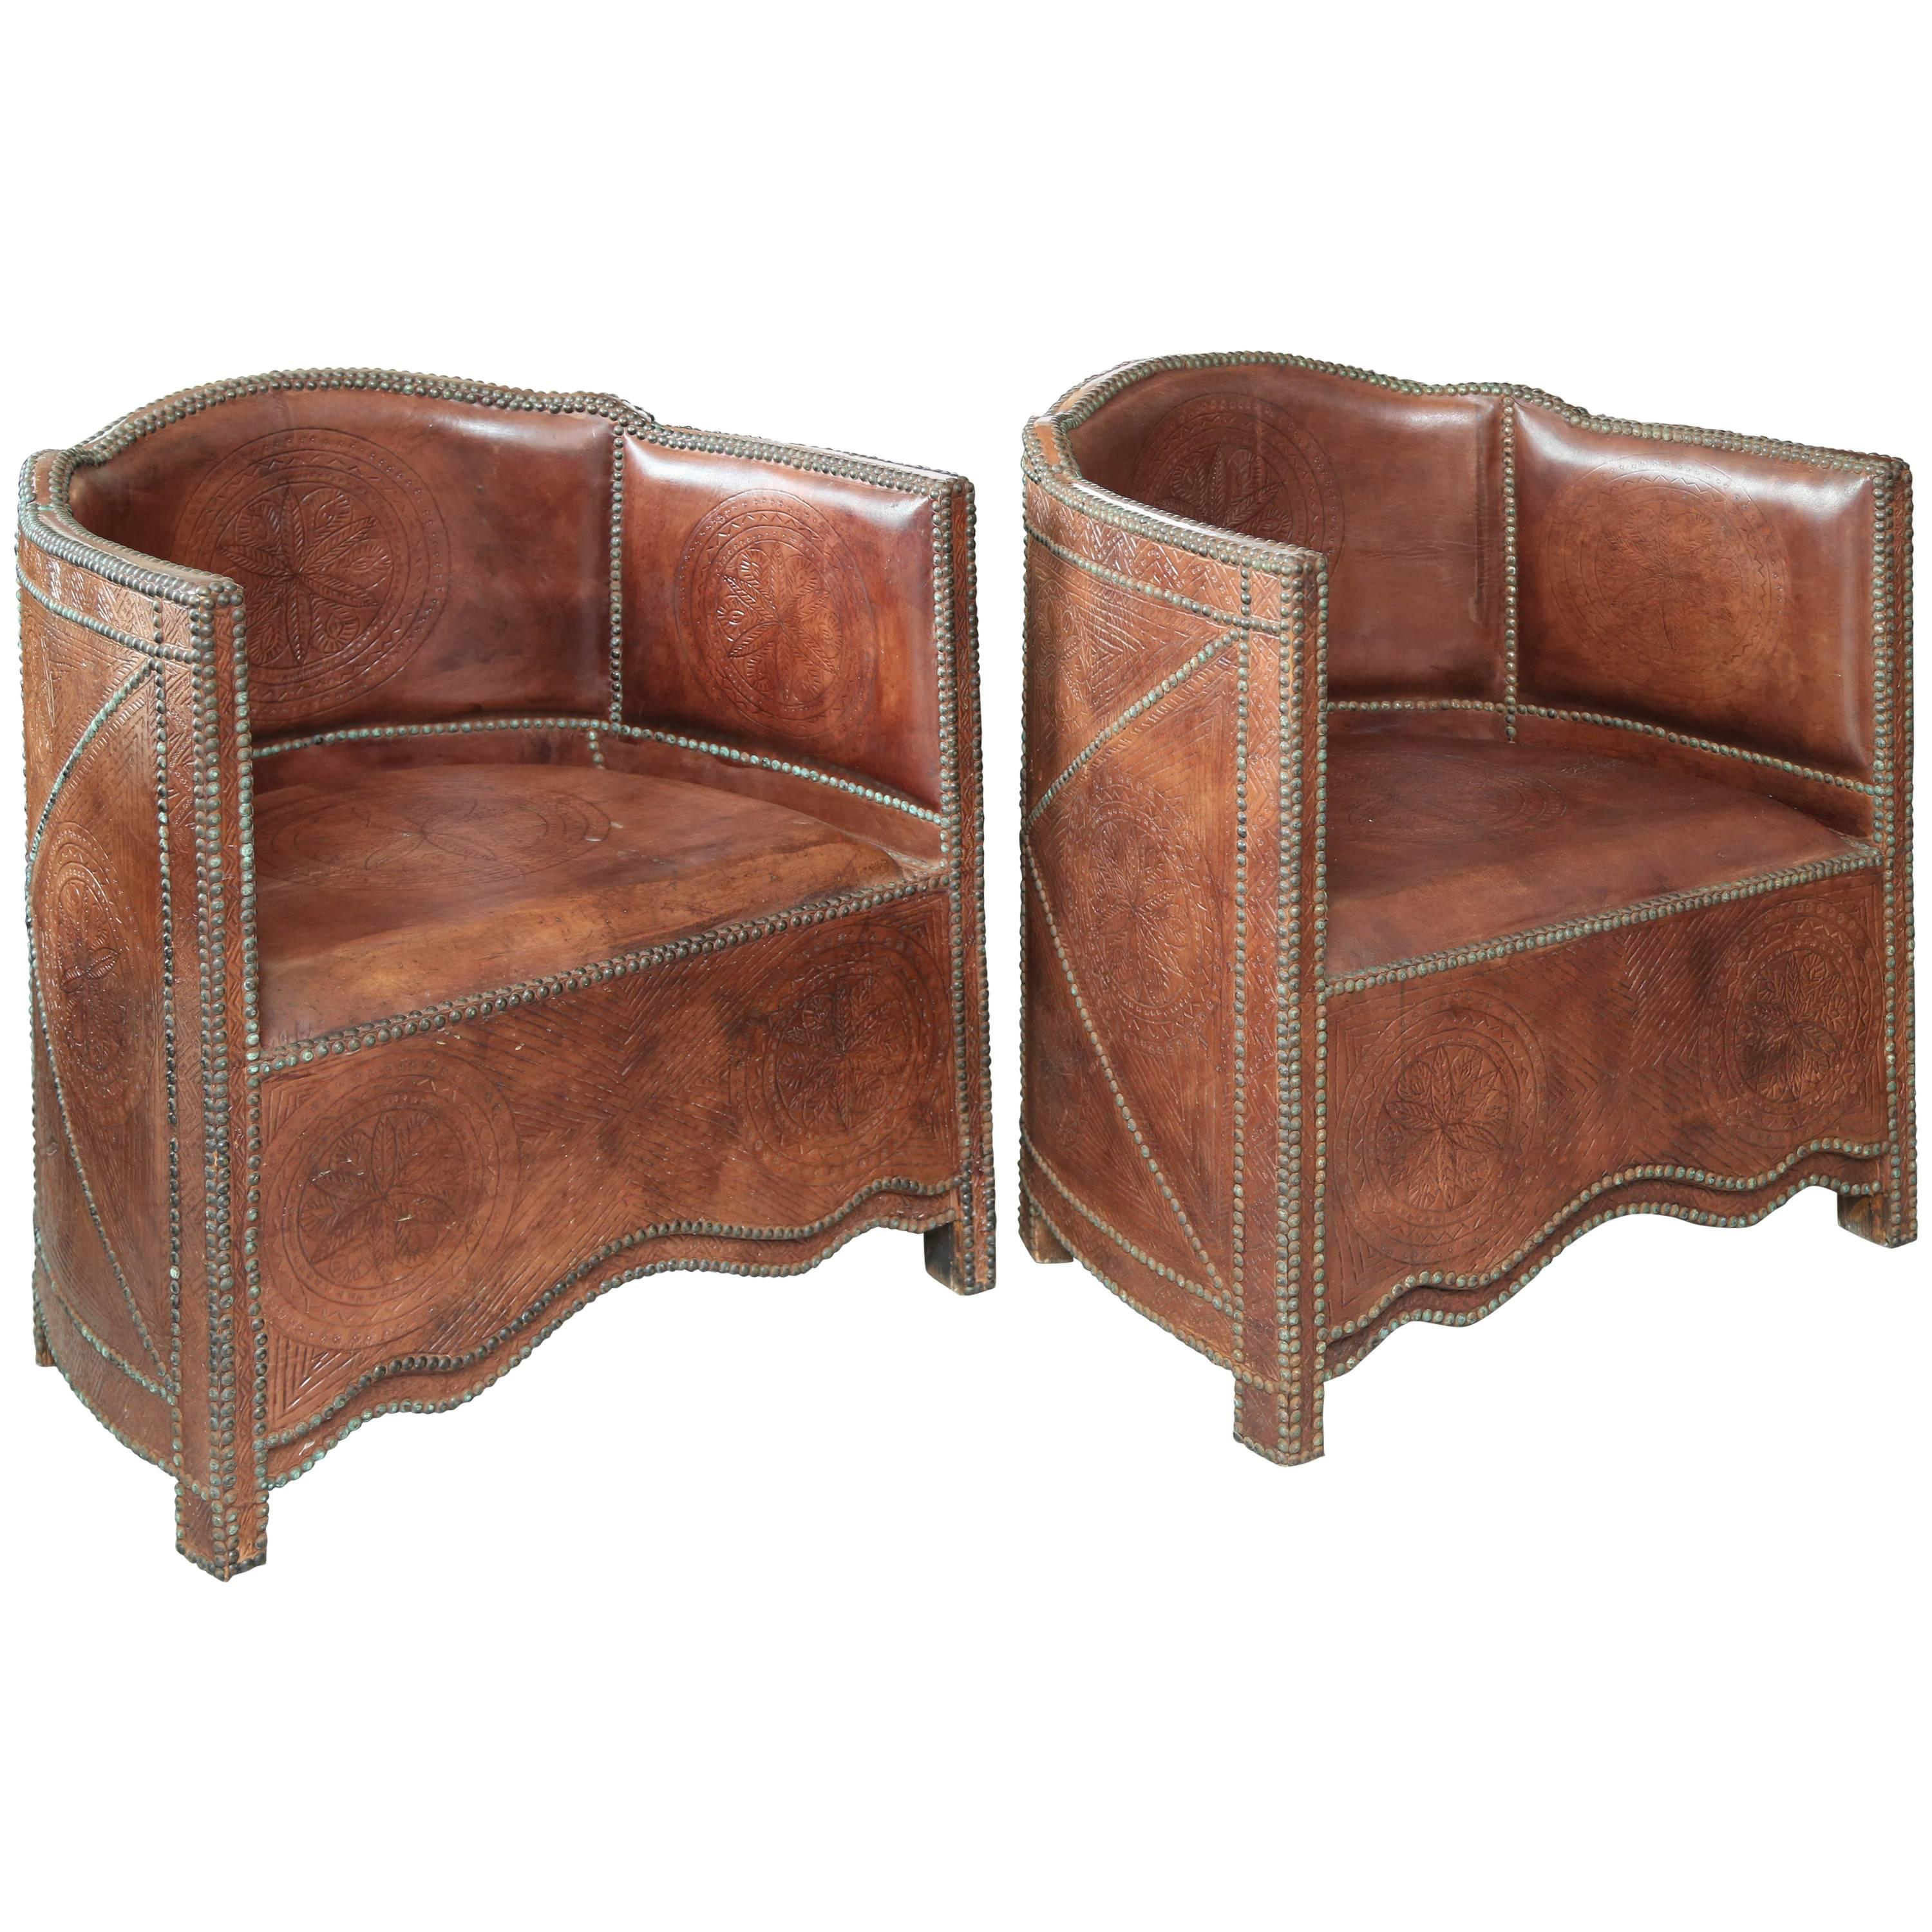 Superb Pair Of Vintage Moroccan Leather Barrel Chairs For Sale